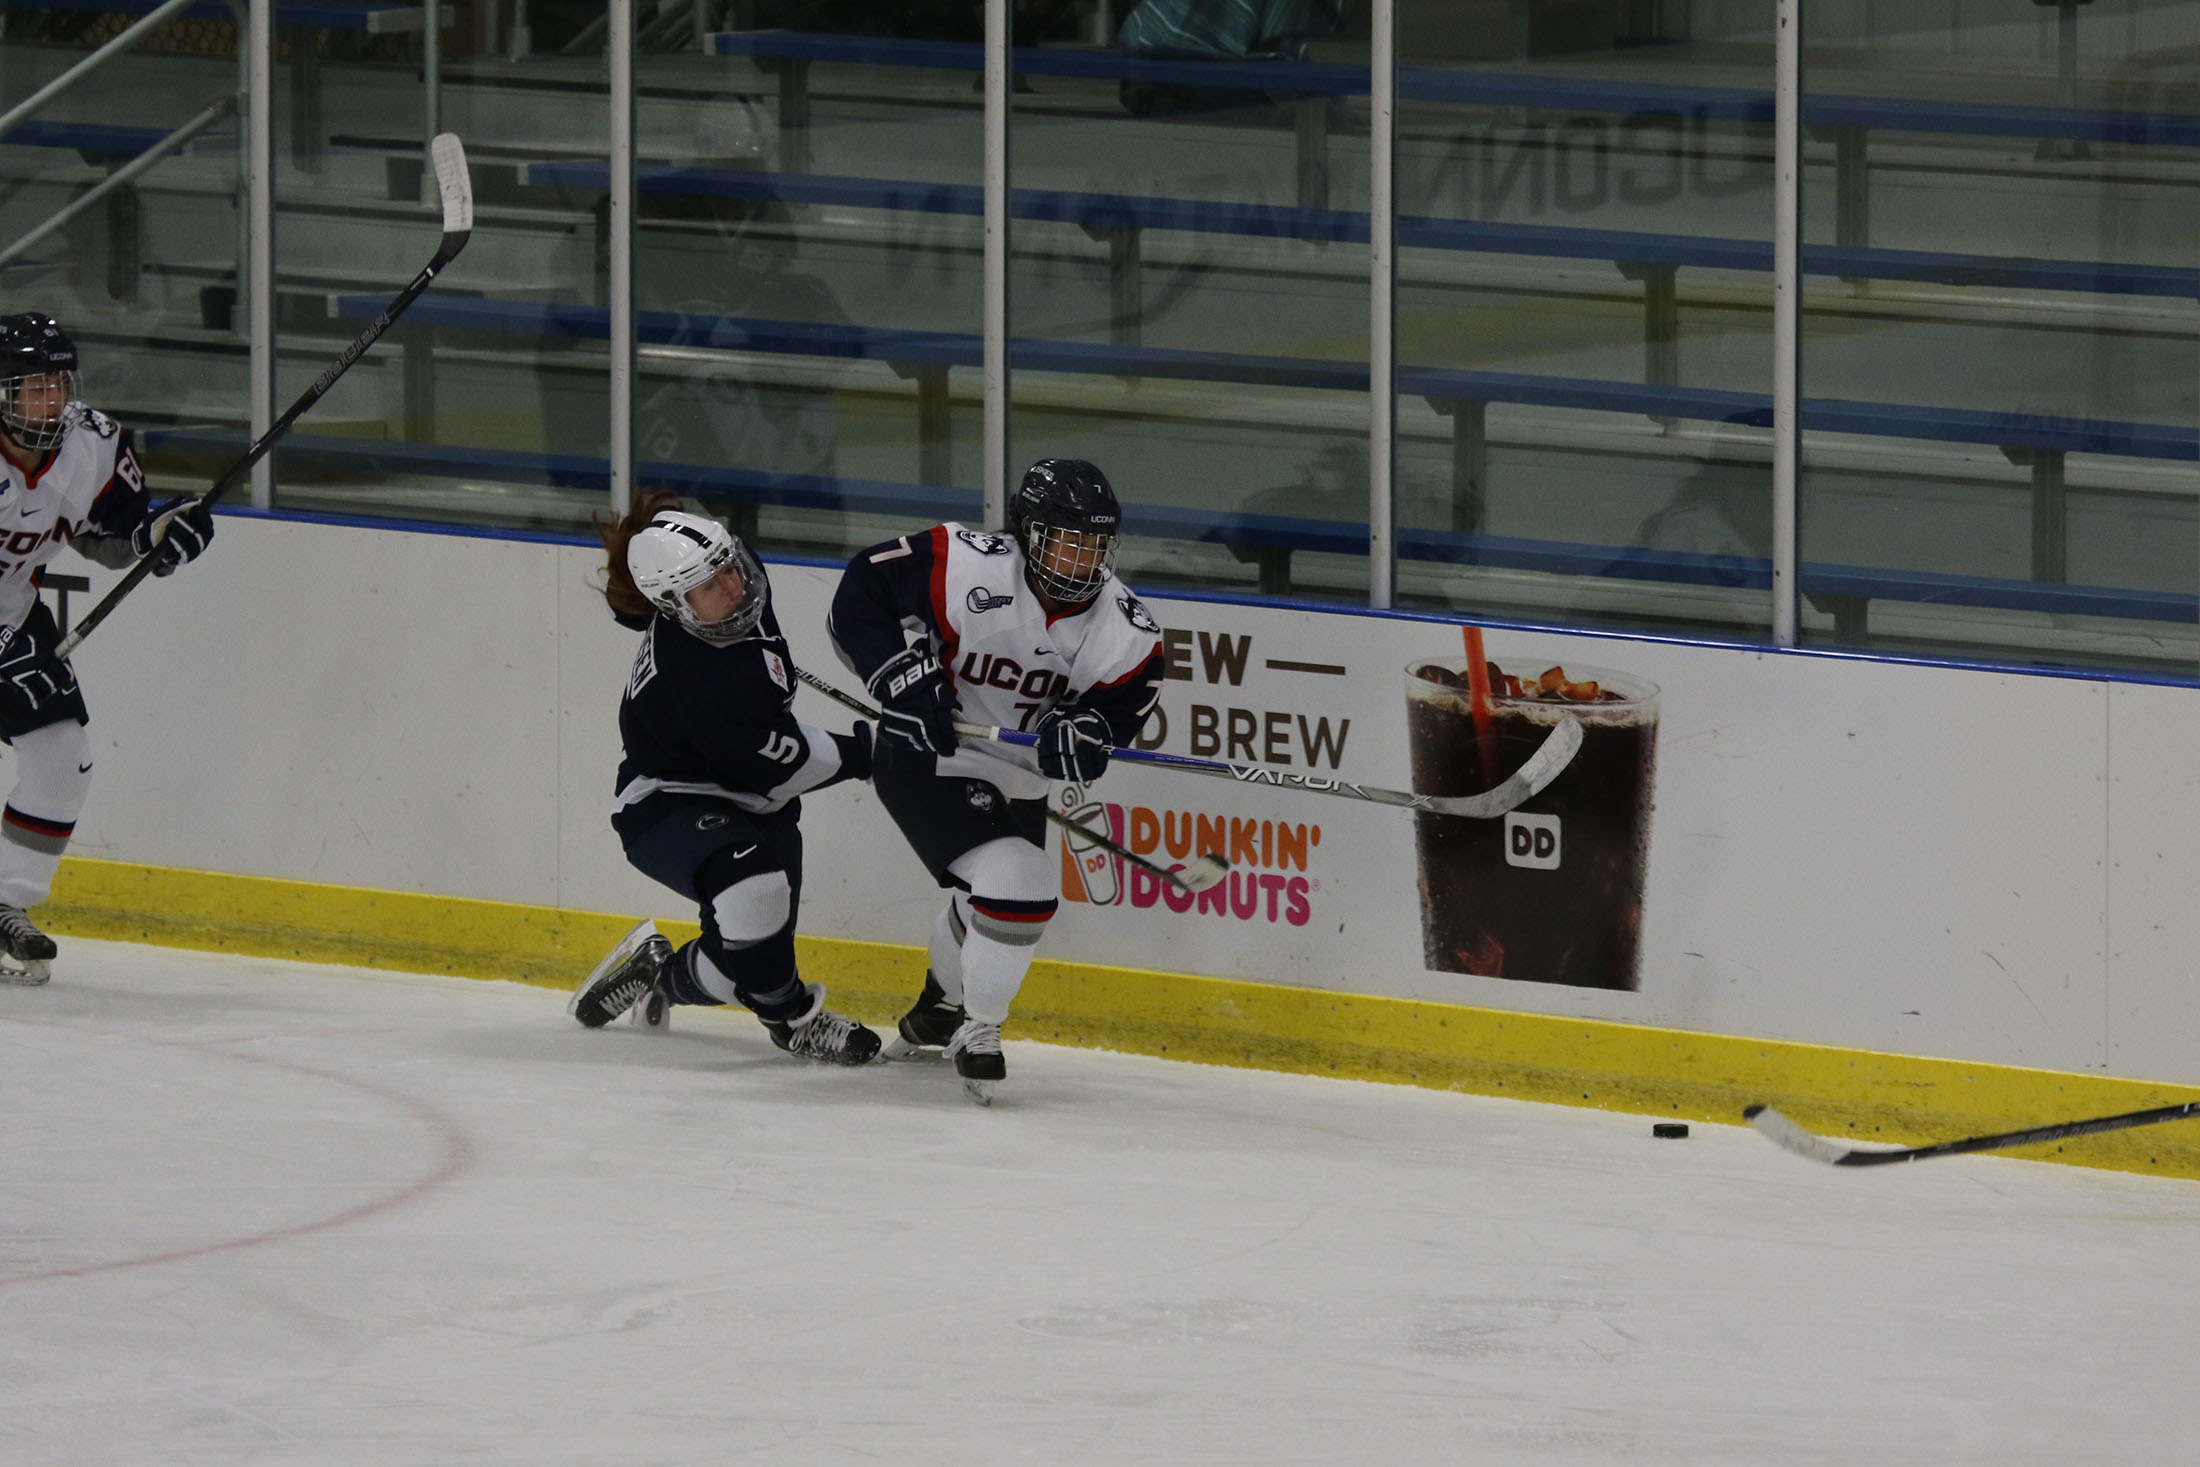 UConn women's hockey completed the first half of the season this weekend. Huskies are 9-6-3 and 4-3-1 against their Hockey East opponents. (Ruohan Li/The Daily Campus)